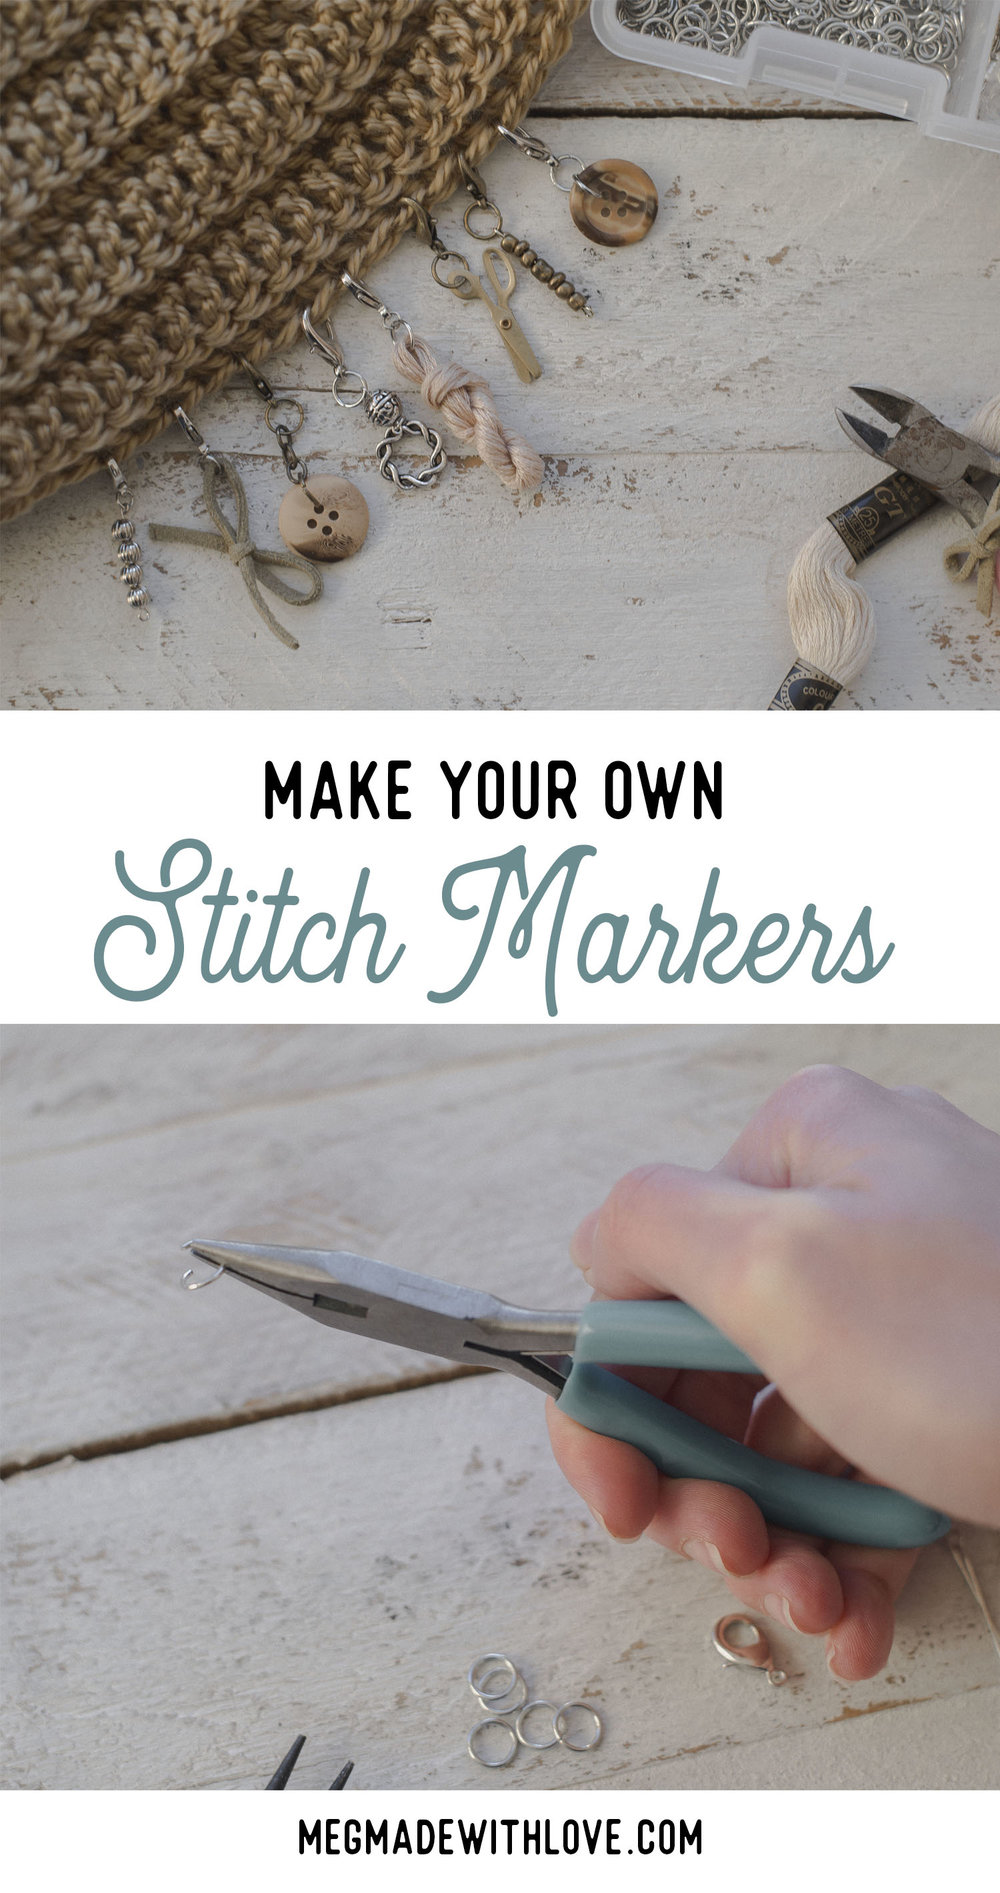 How to Make Your Own Stitch Markers - Megmade with Love